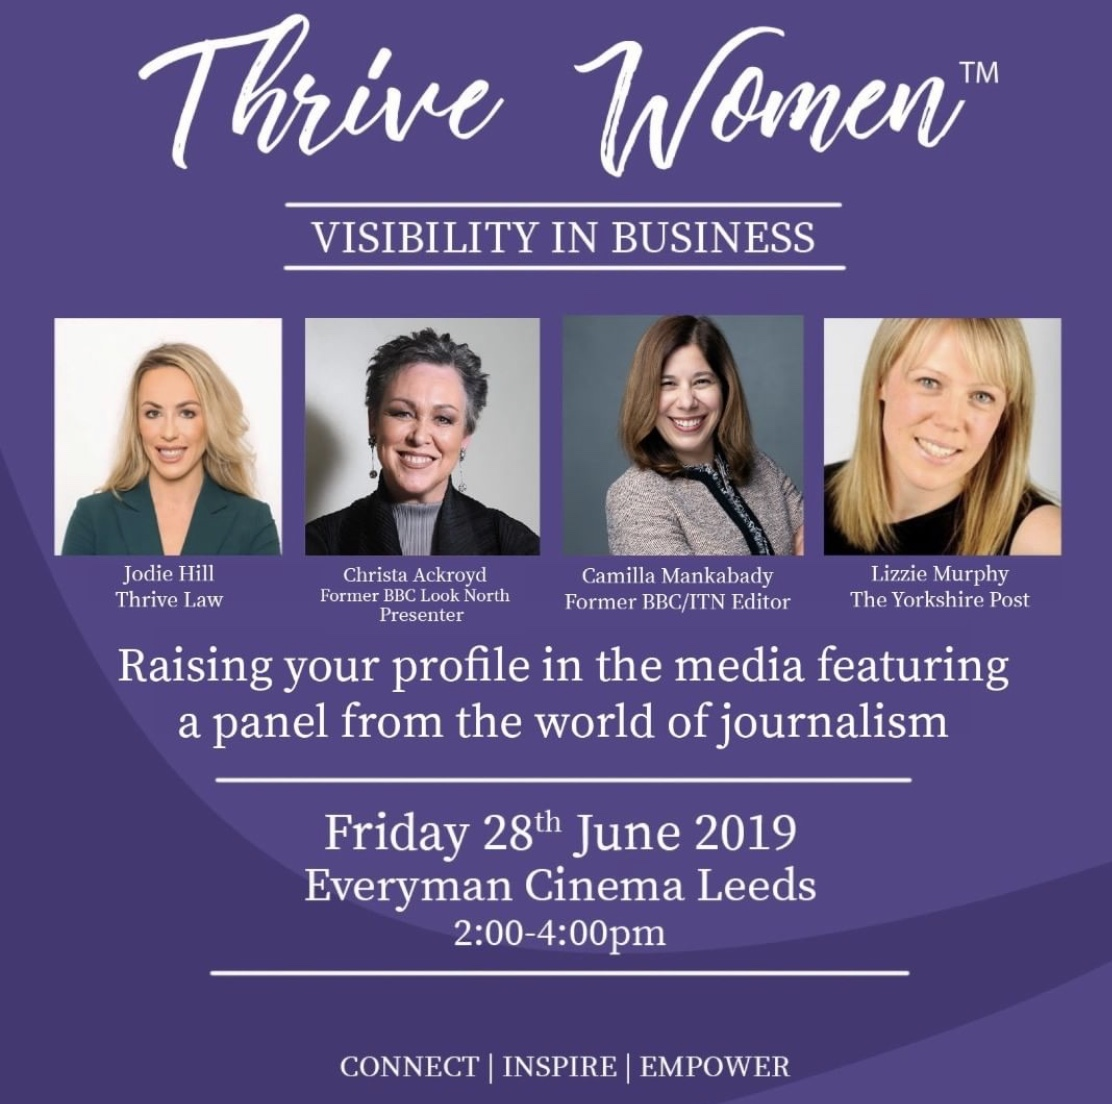 Thrive Women Visibility In Business Event